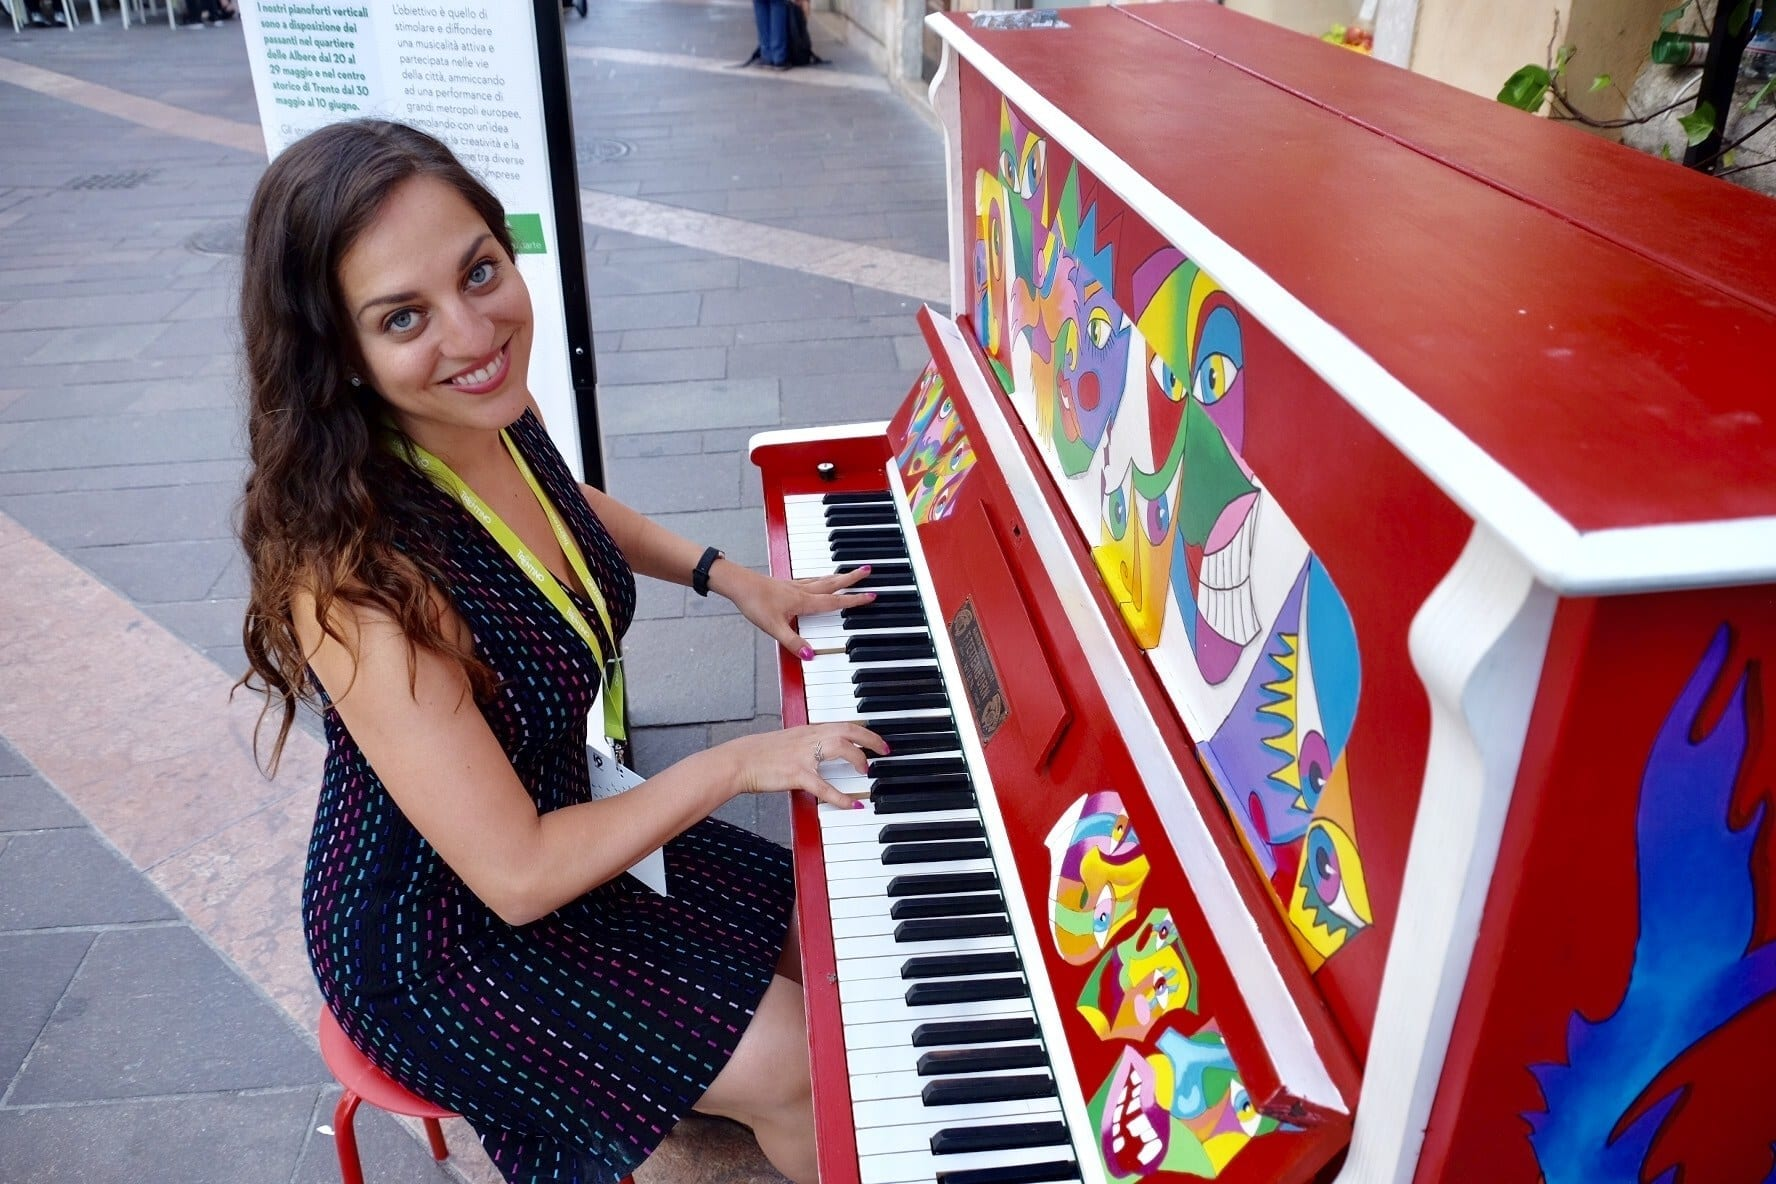 Kate is sitting down and playing a bright red painted piano in the streets of Trento. She looks at the camera and smiles.